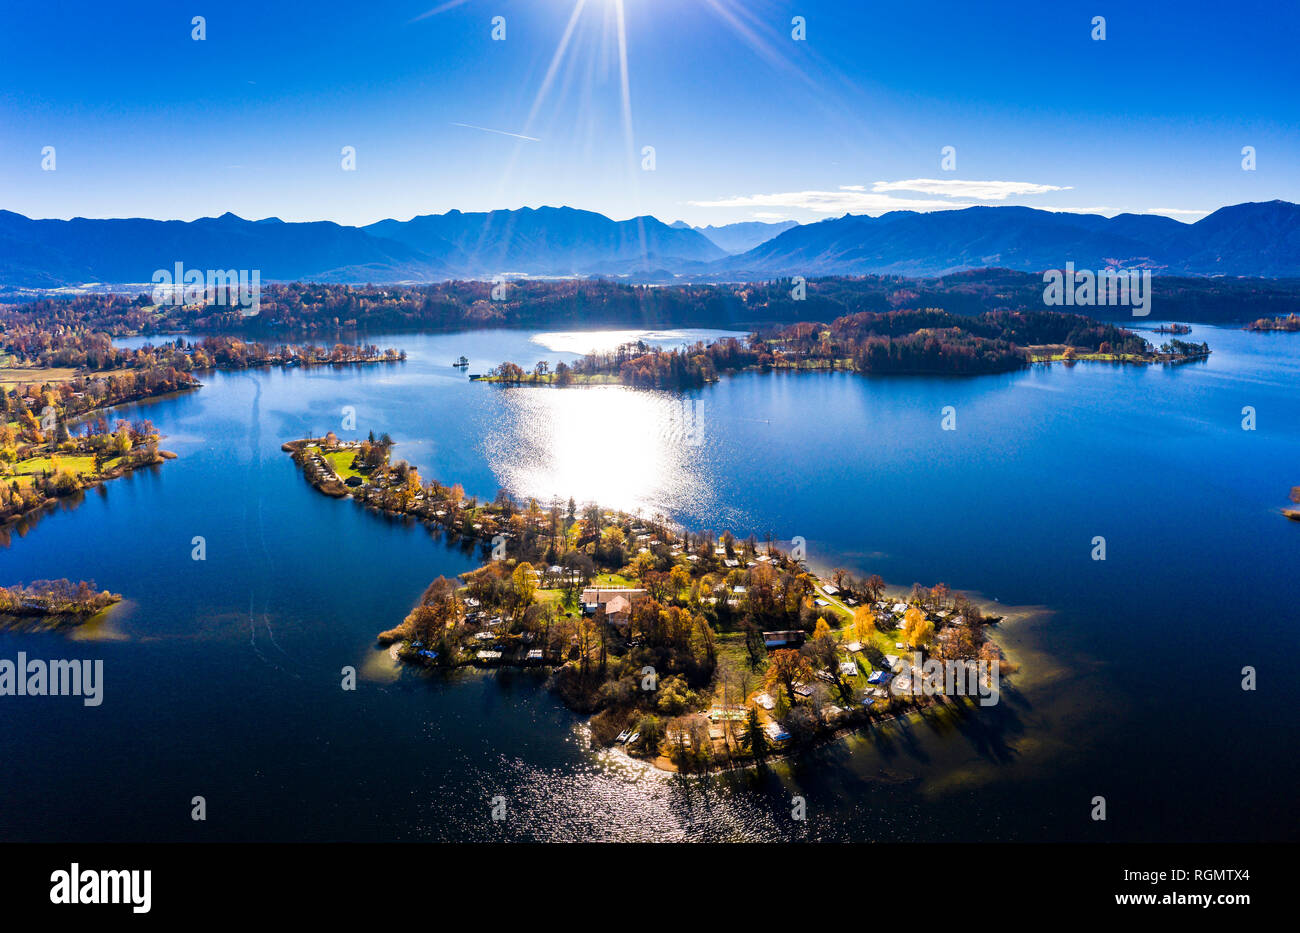 Germany, Bavaria, East Allgaeu, Garmisch-Partenkirchen district, Alpine Foreland, Aerial view of Staffelsee lake with islands Stock Photo